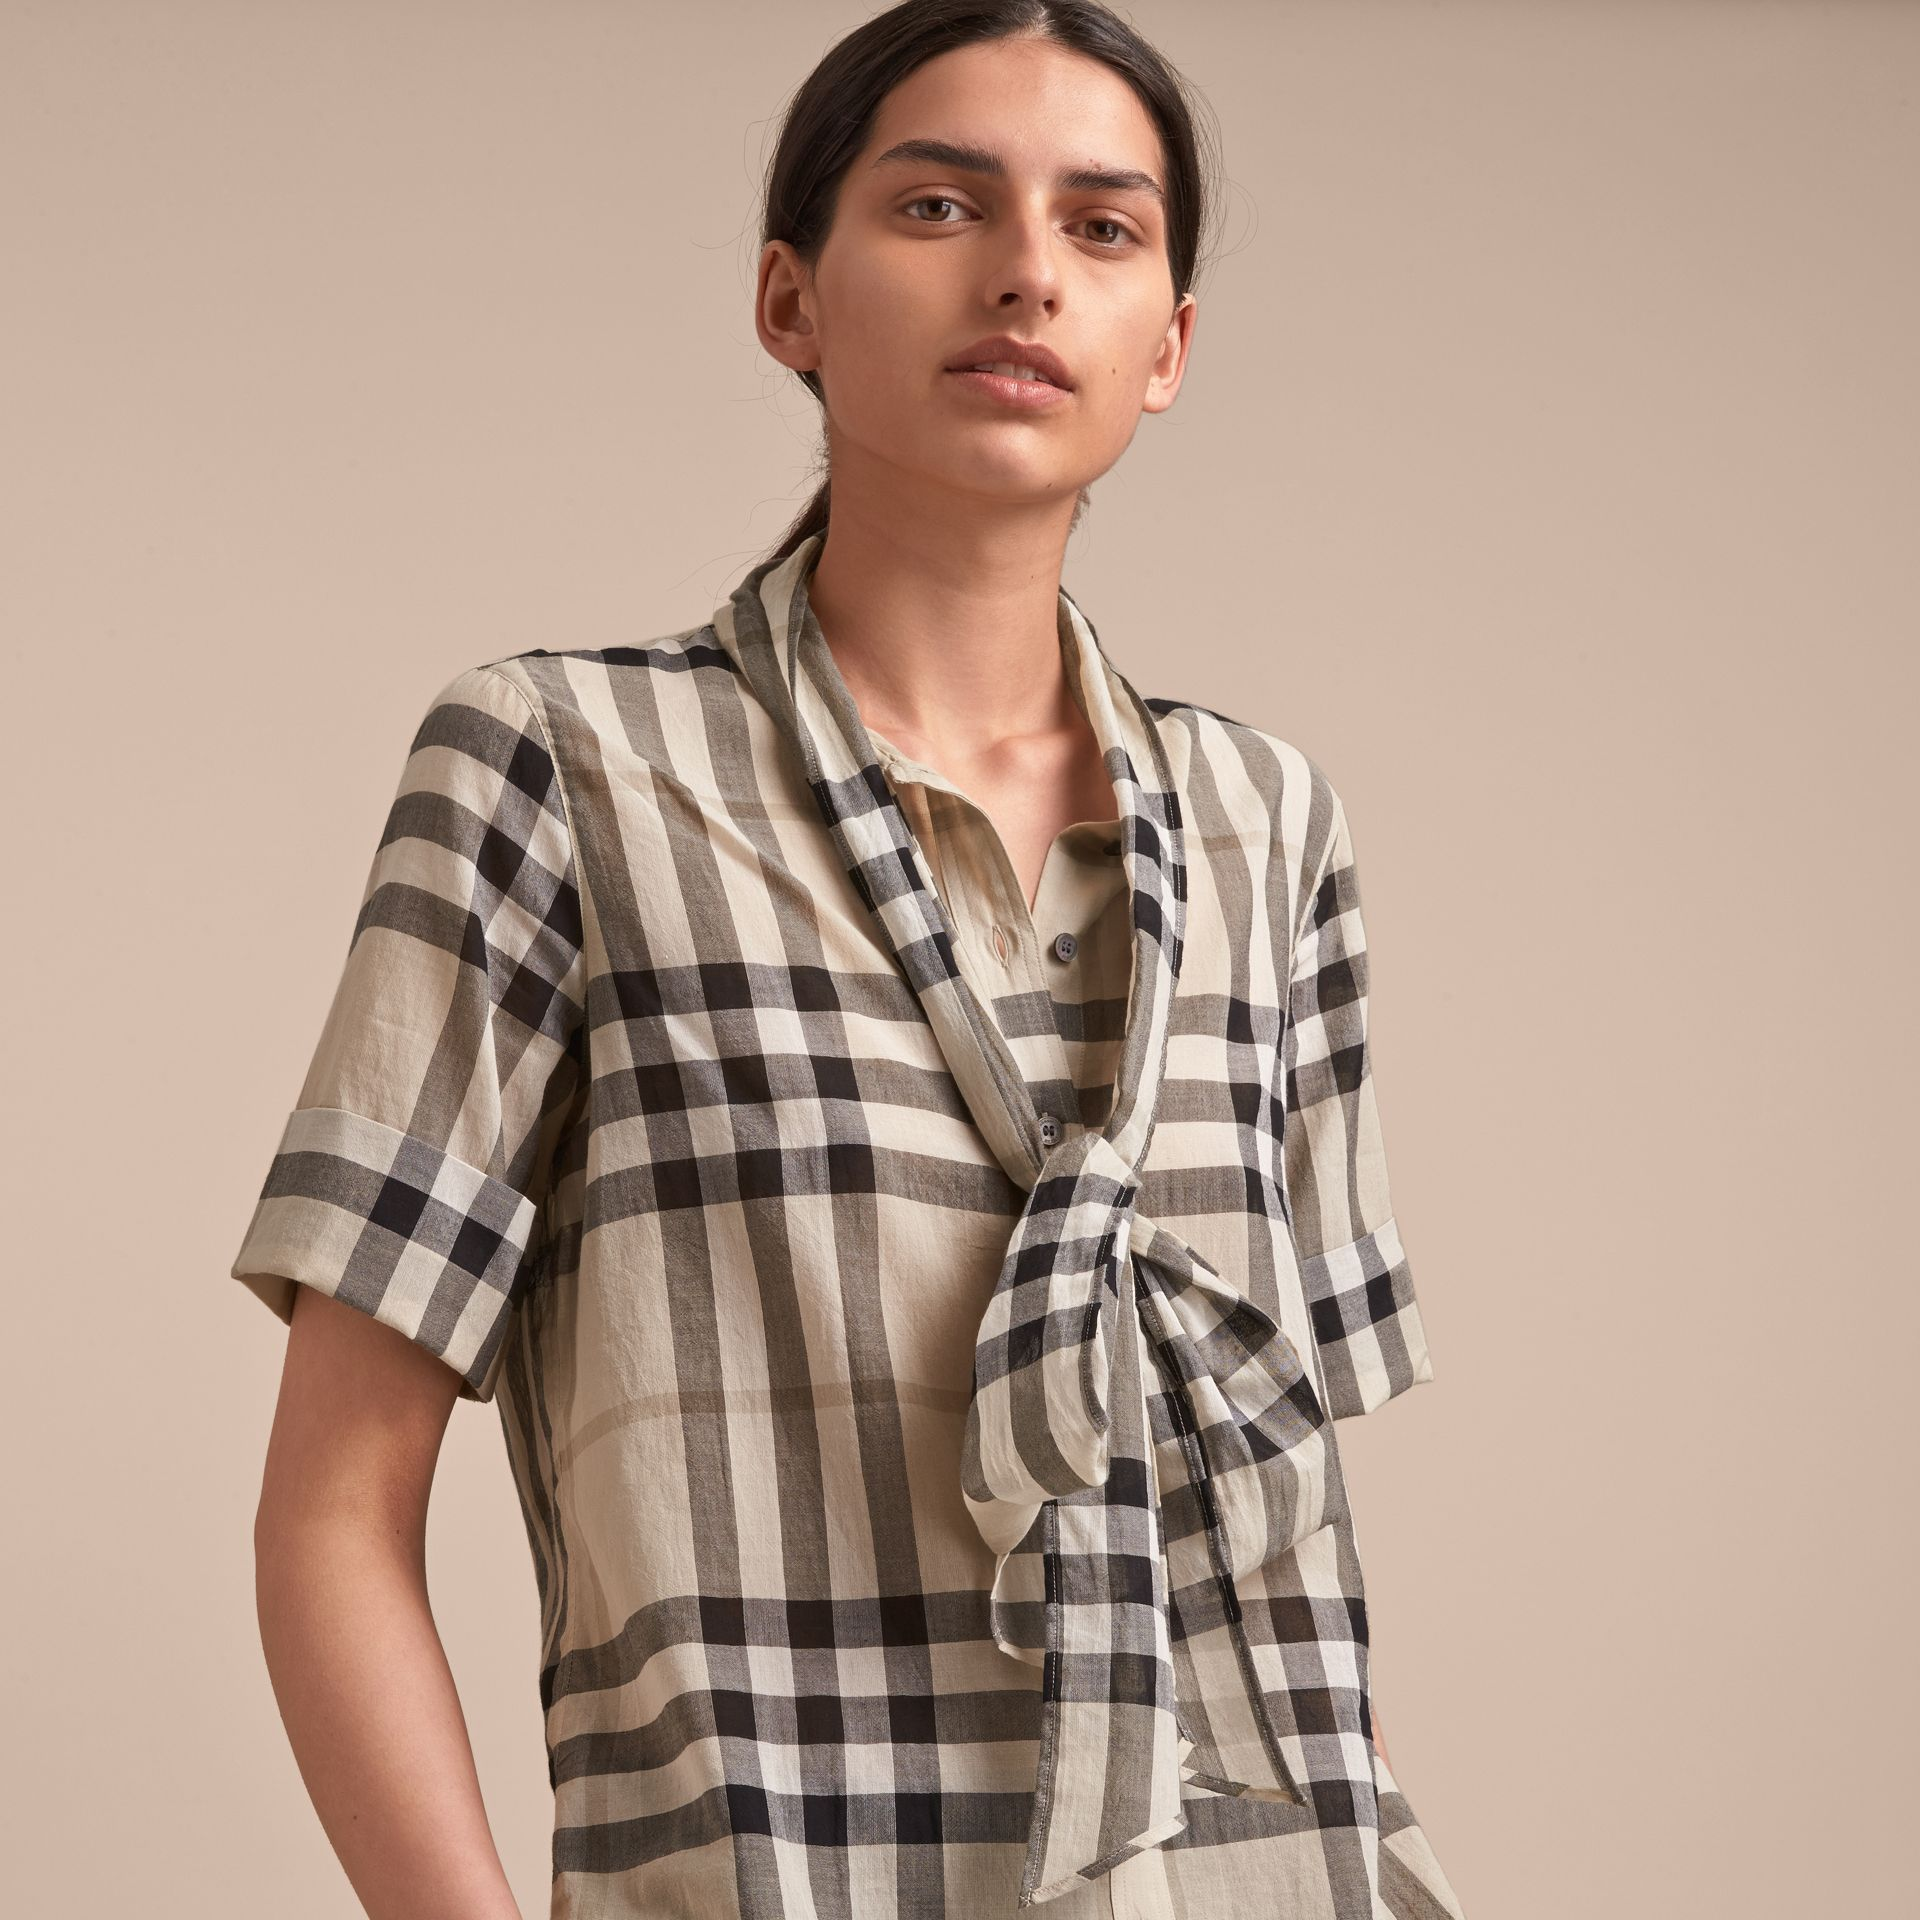 Short-sleeve Check Cotton Tie Neck Shirt in Chino - Women | Burberry - gallery image 5